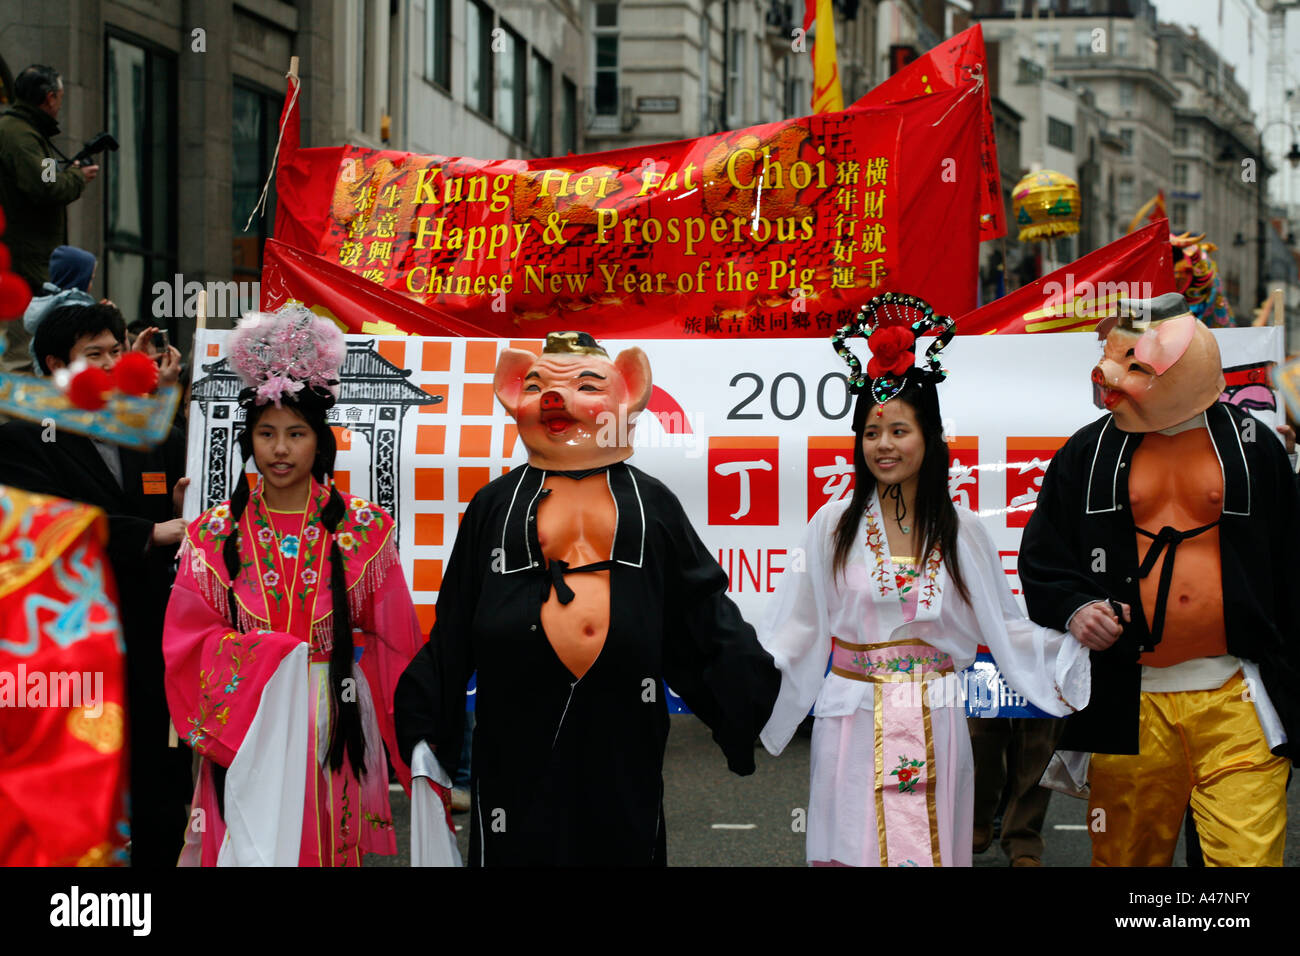 chinese new year parade for the year of the pig in london england 2007 - Chinese New Year 2007